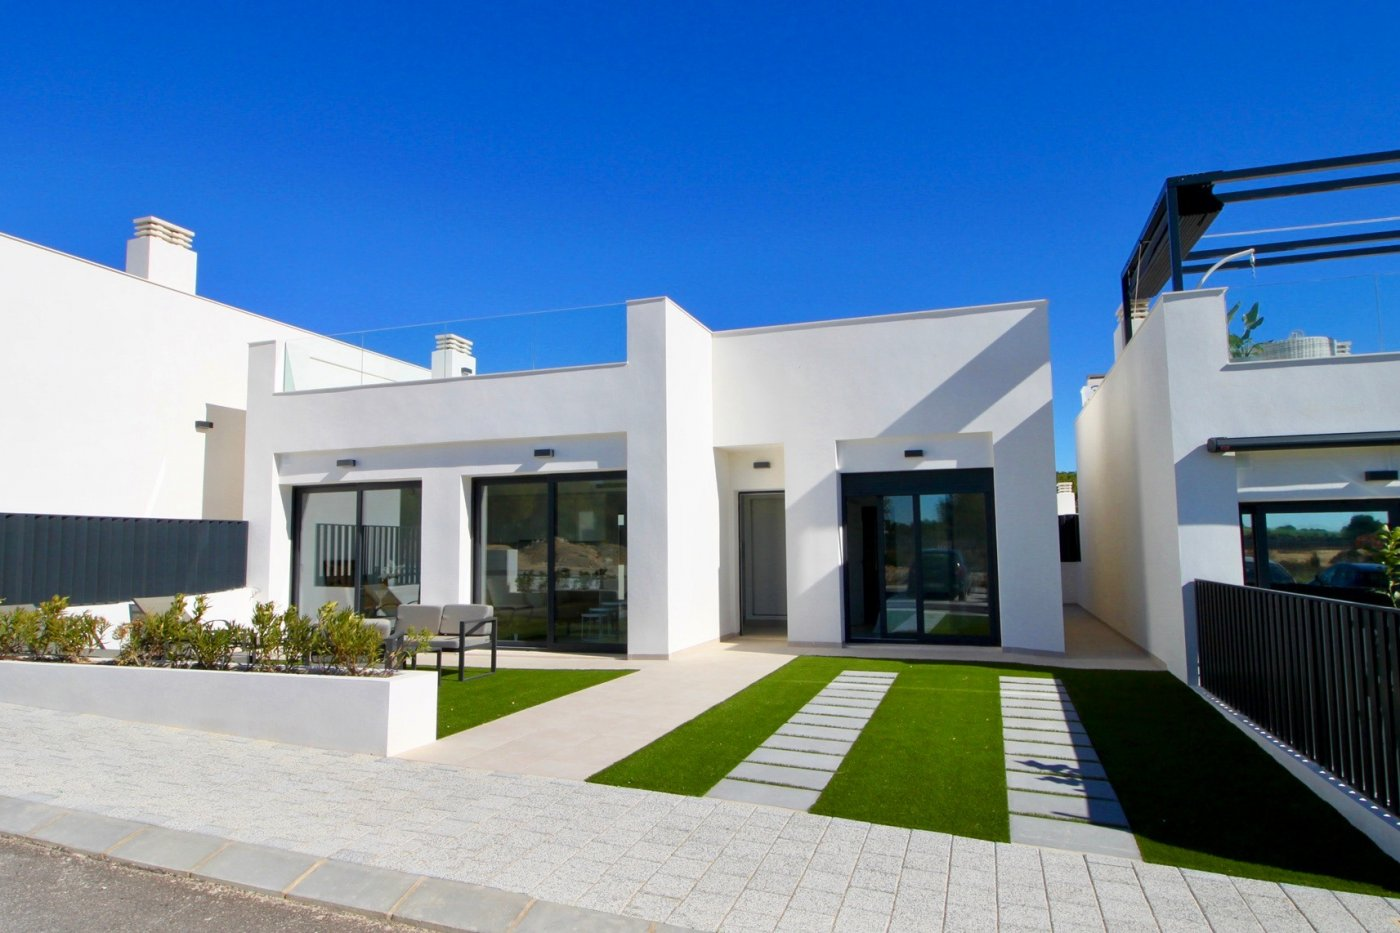 Villa ref 3265-03092 for sale in Lo Romero Golf Spain - Quality Homes Costa Cálida